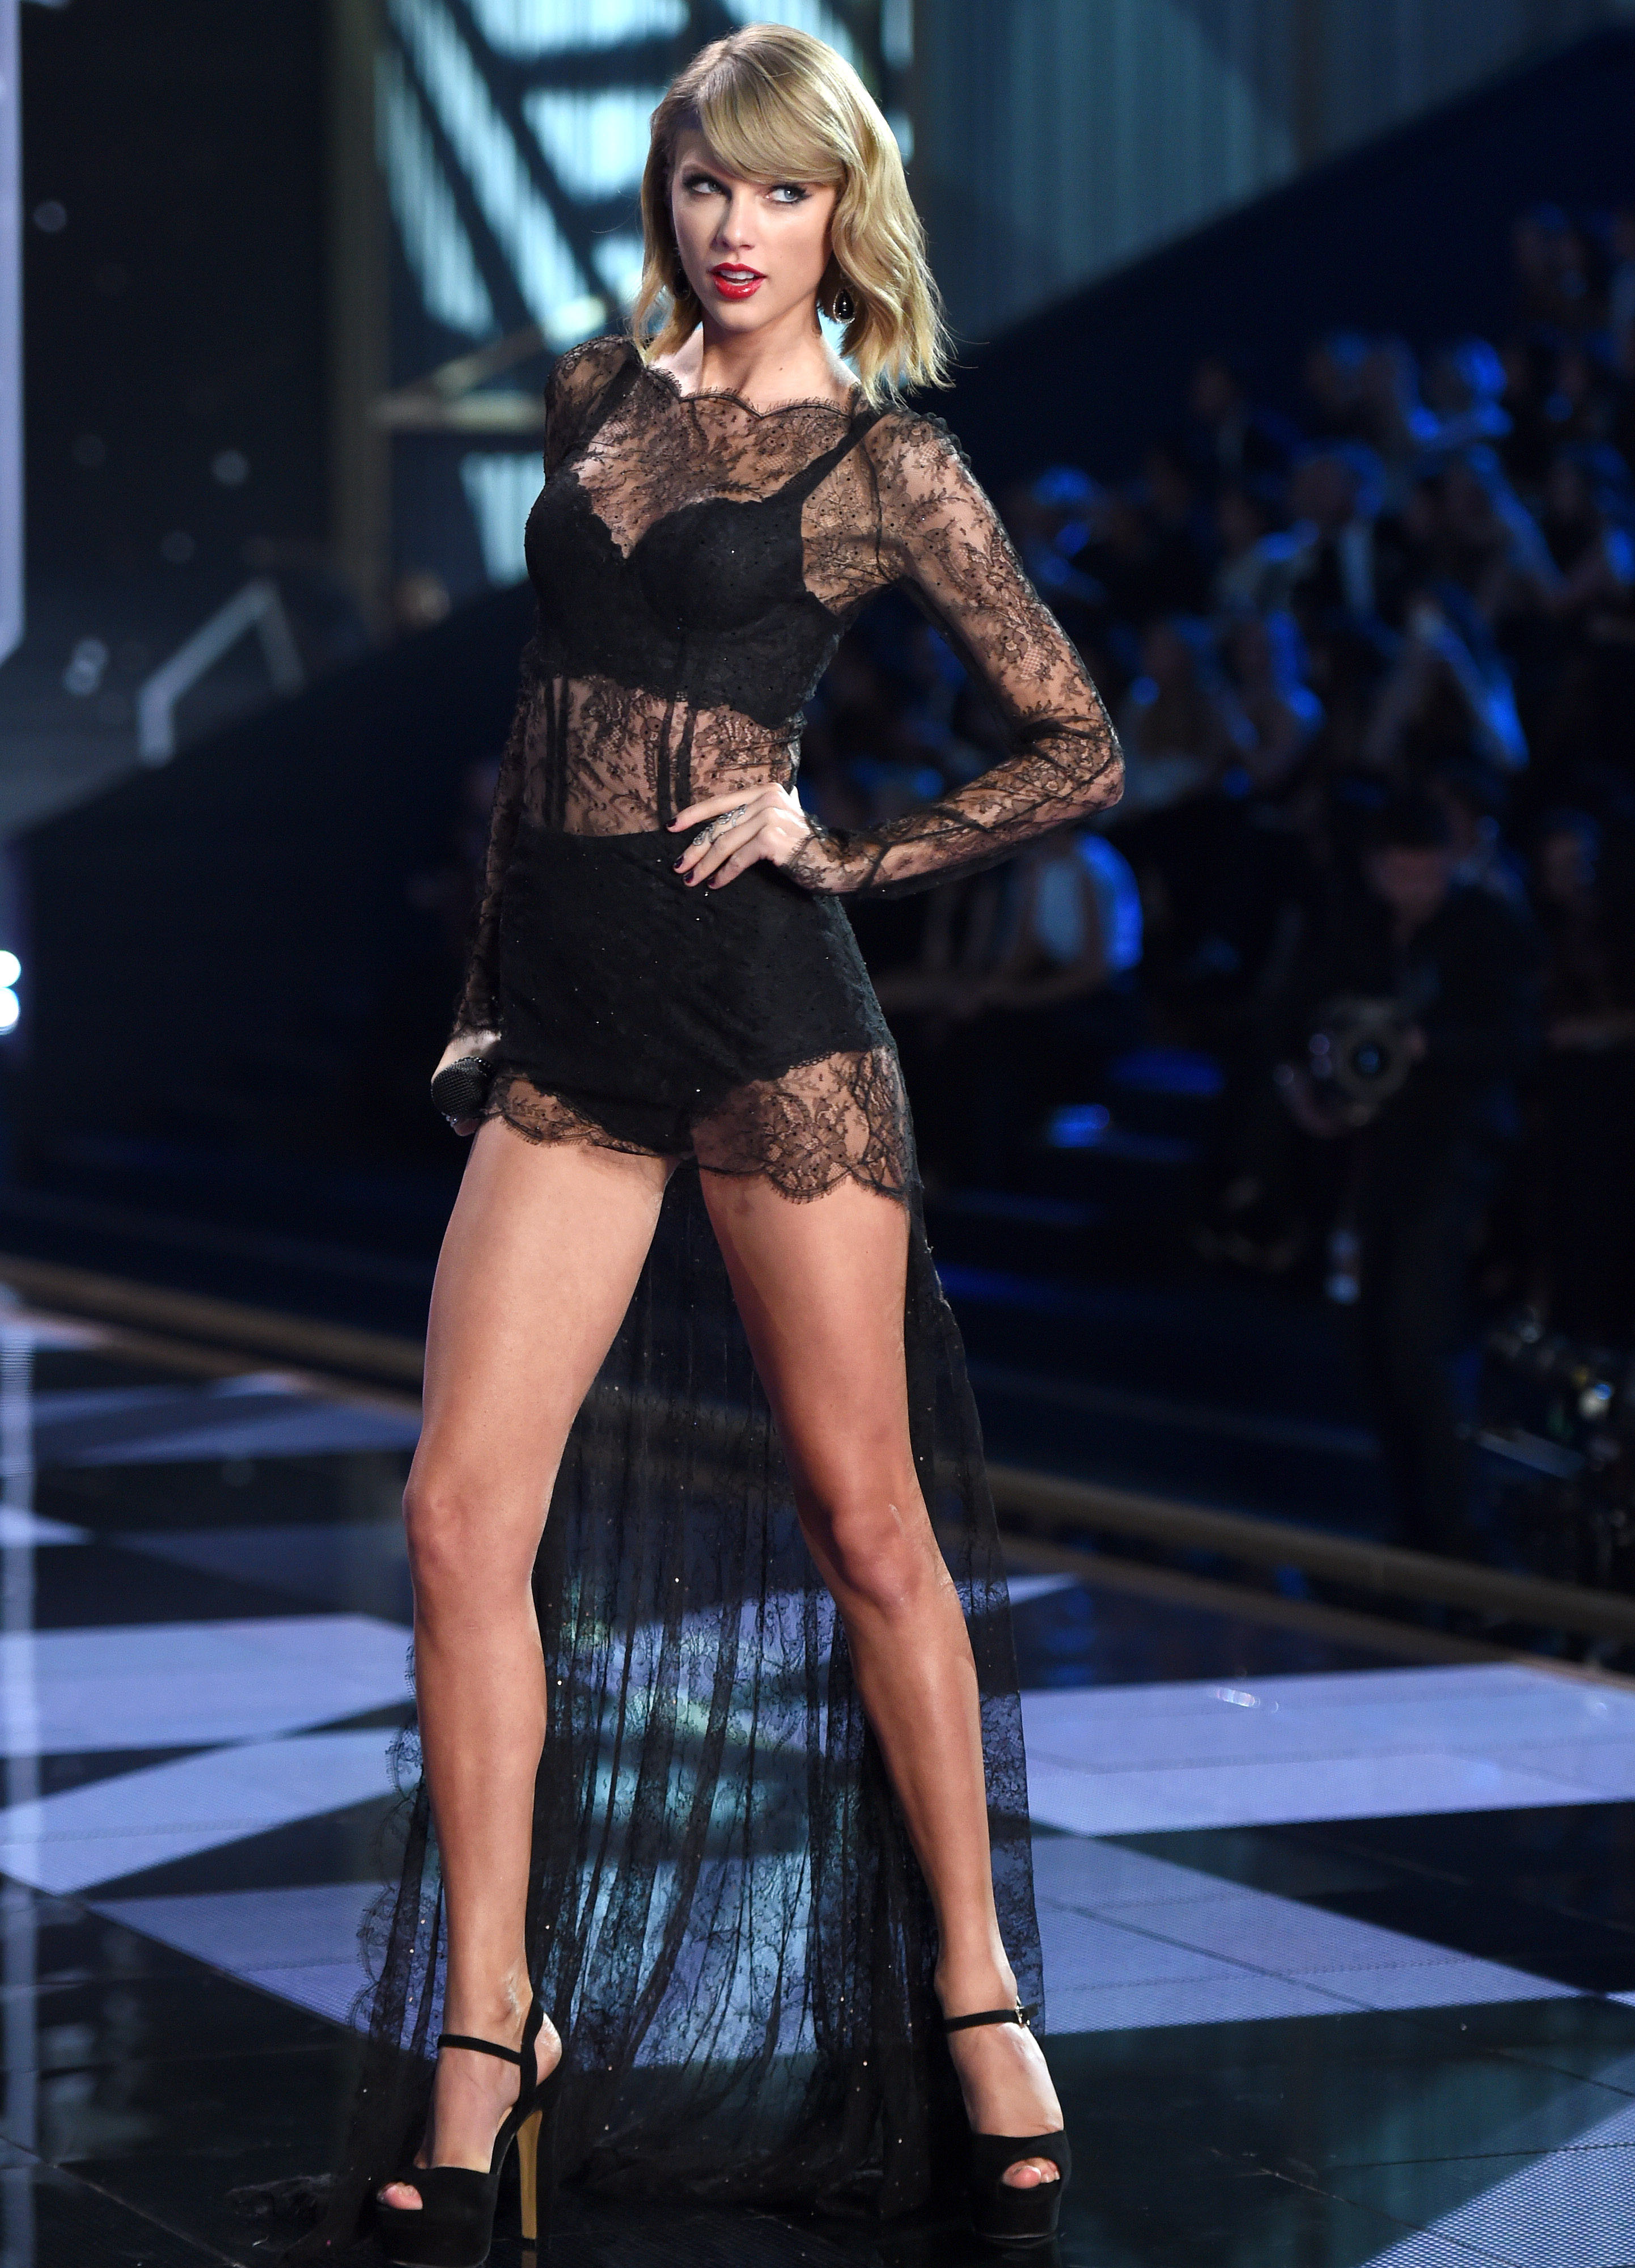 Taylor Swift S Legs Are Not Insured For 40 Million